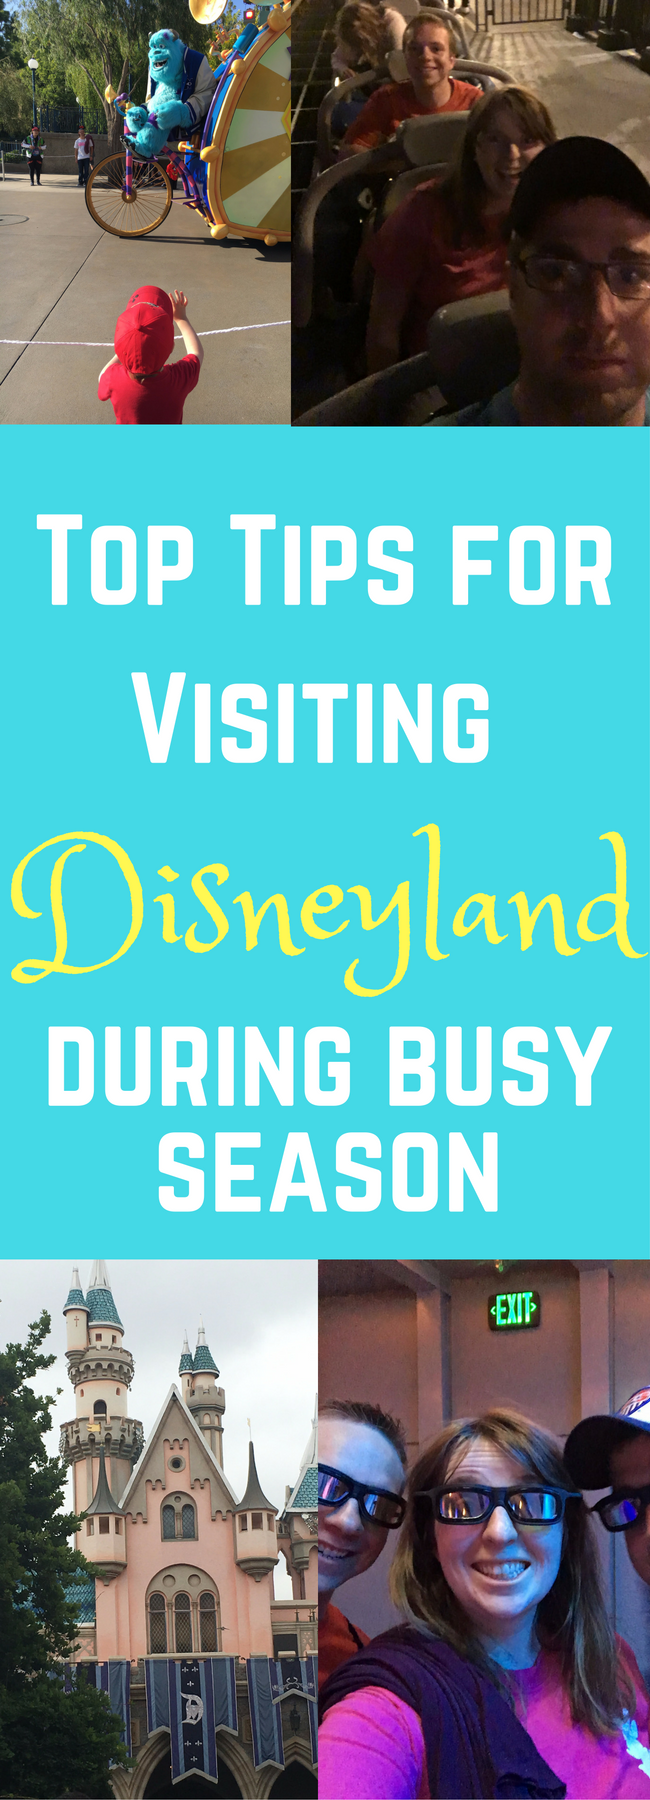 Disneyland / Disneyland Tips / Tips for Visiting Disneyland / Disneyland During the Summer / Best times to visit disneyland / disneyland advice / disneyland secrets / disneyland california / disneyland | tips, tricks & secrets